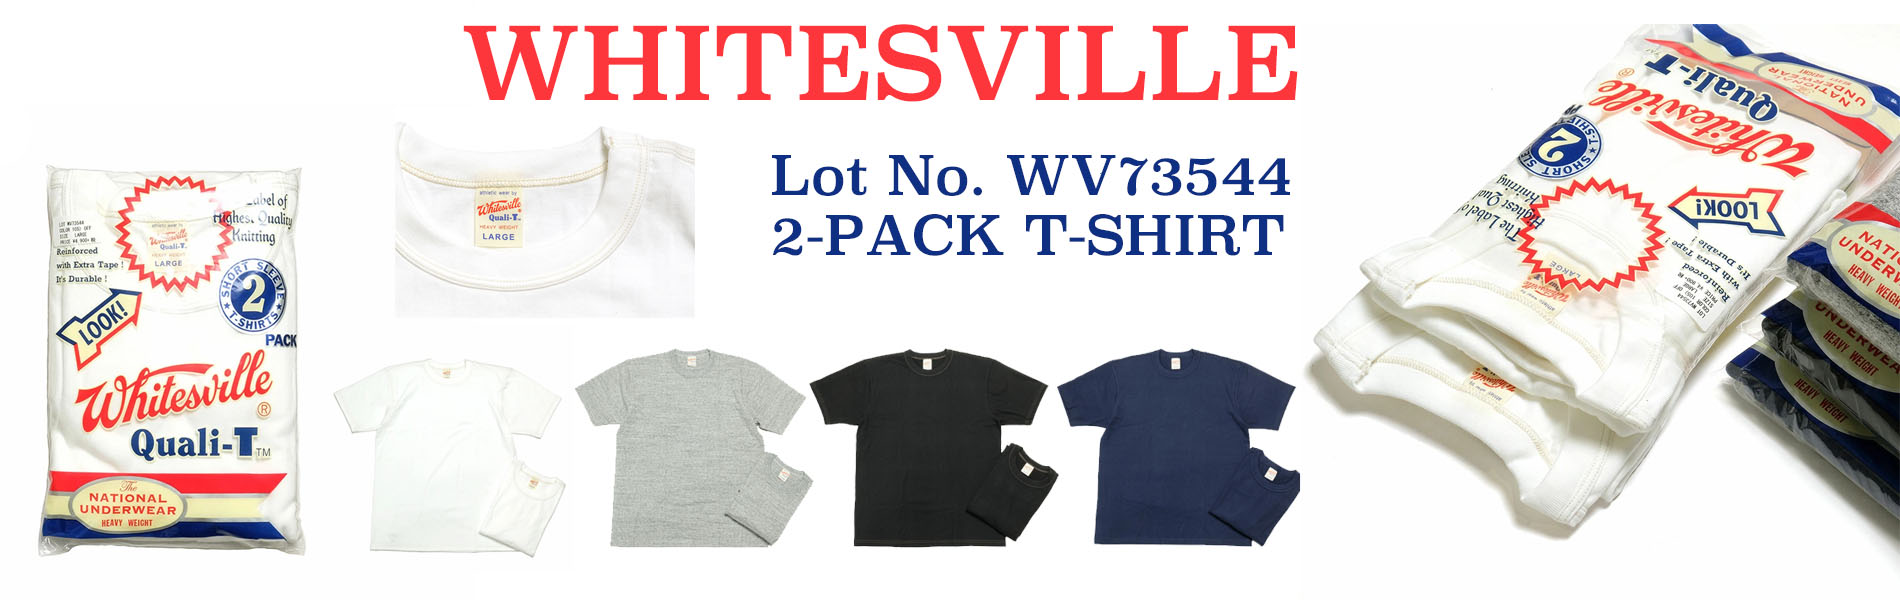 WHITESVILLE 2-PACK T-SHIRT WV73544